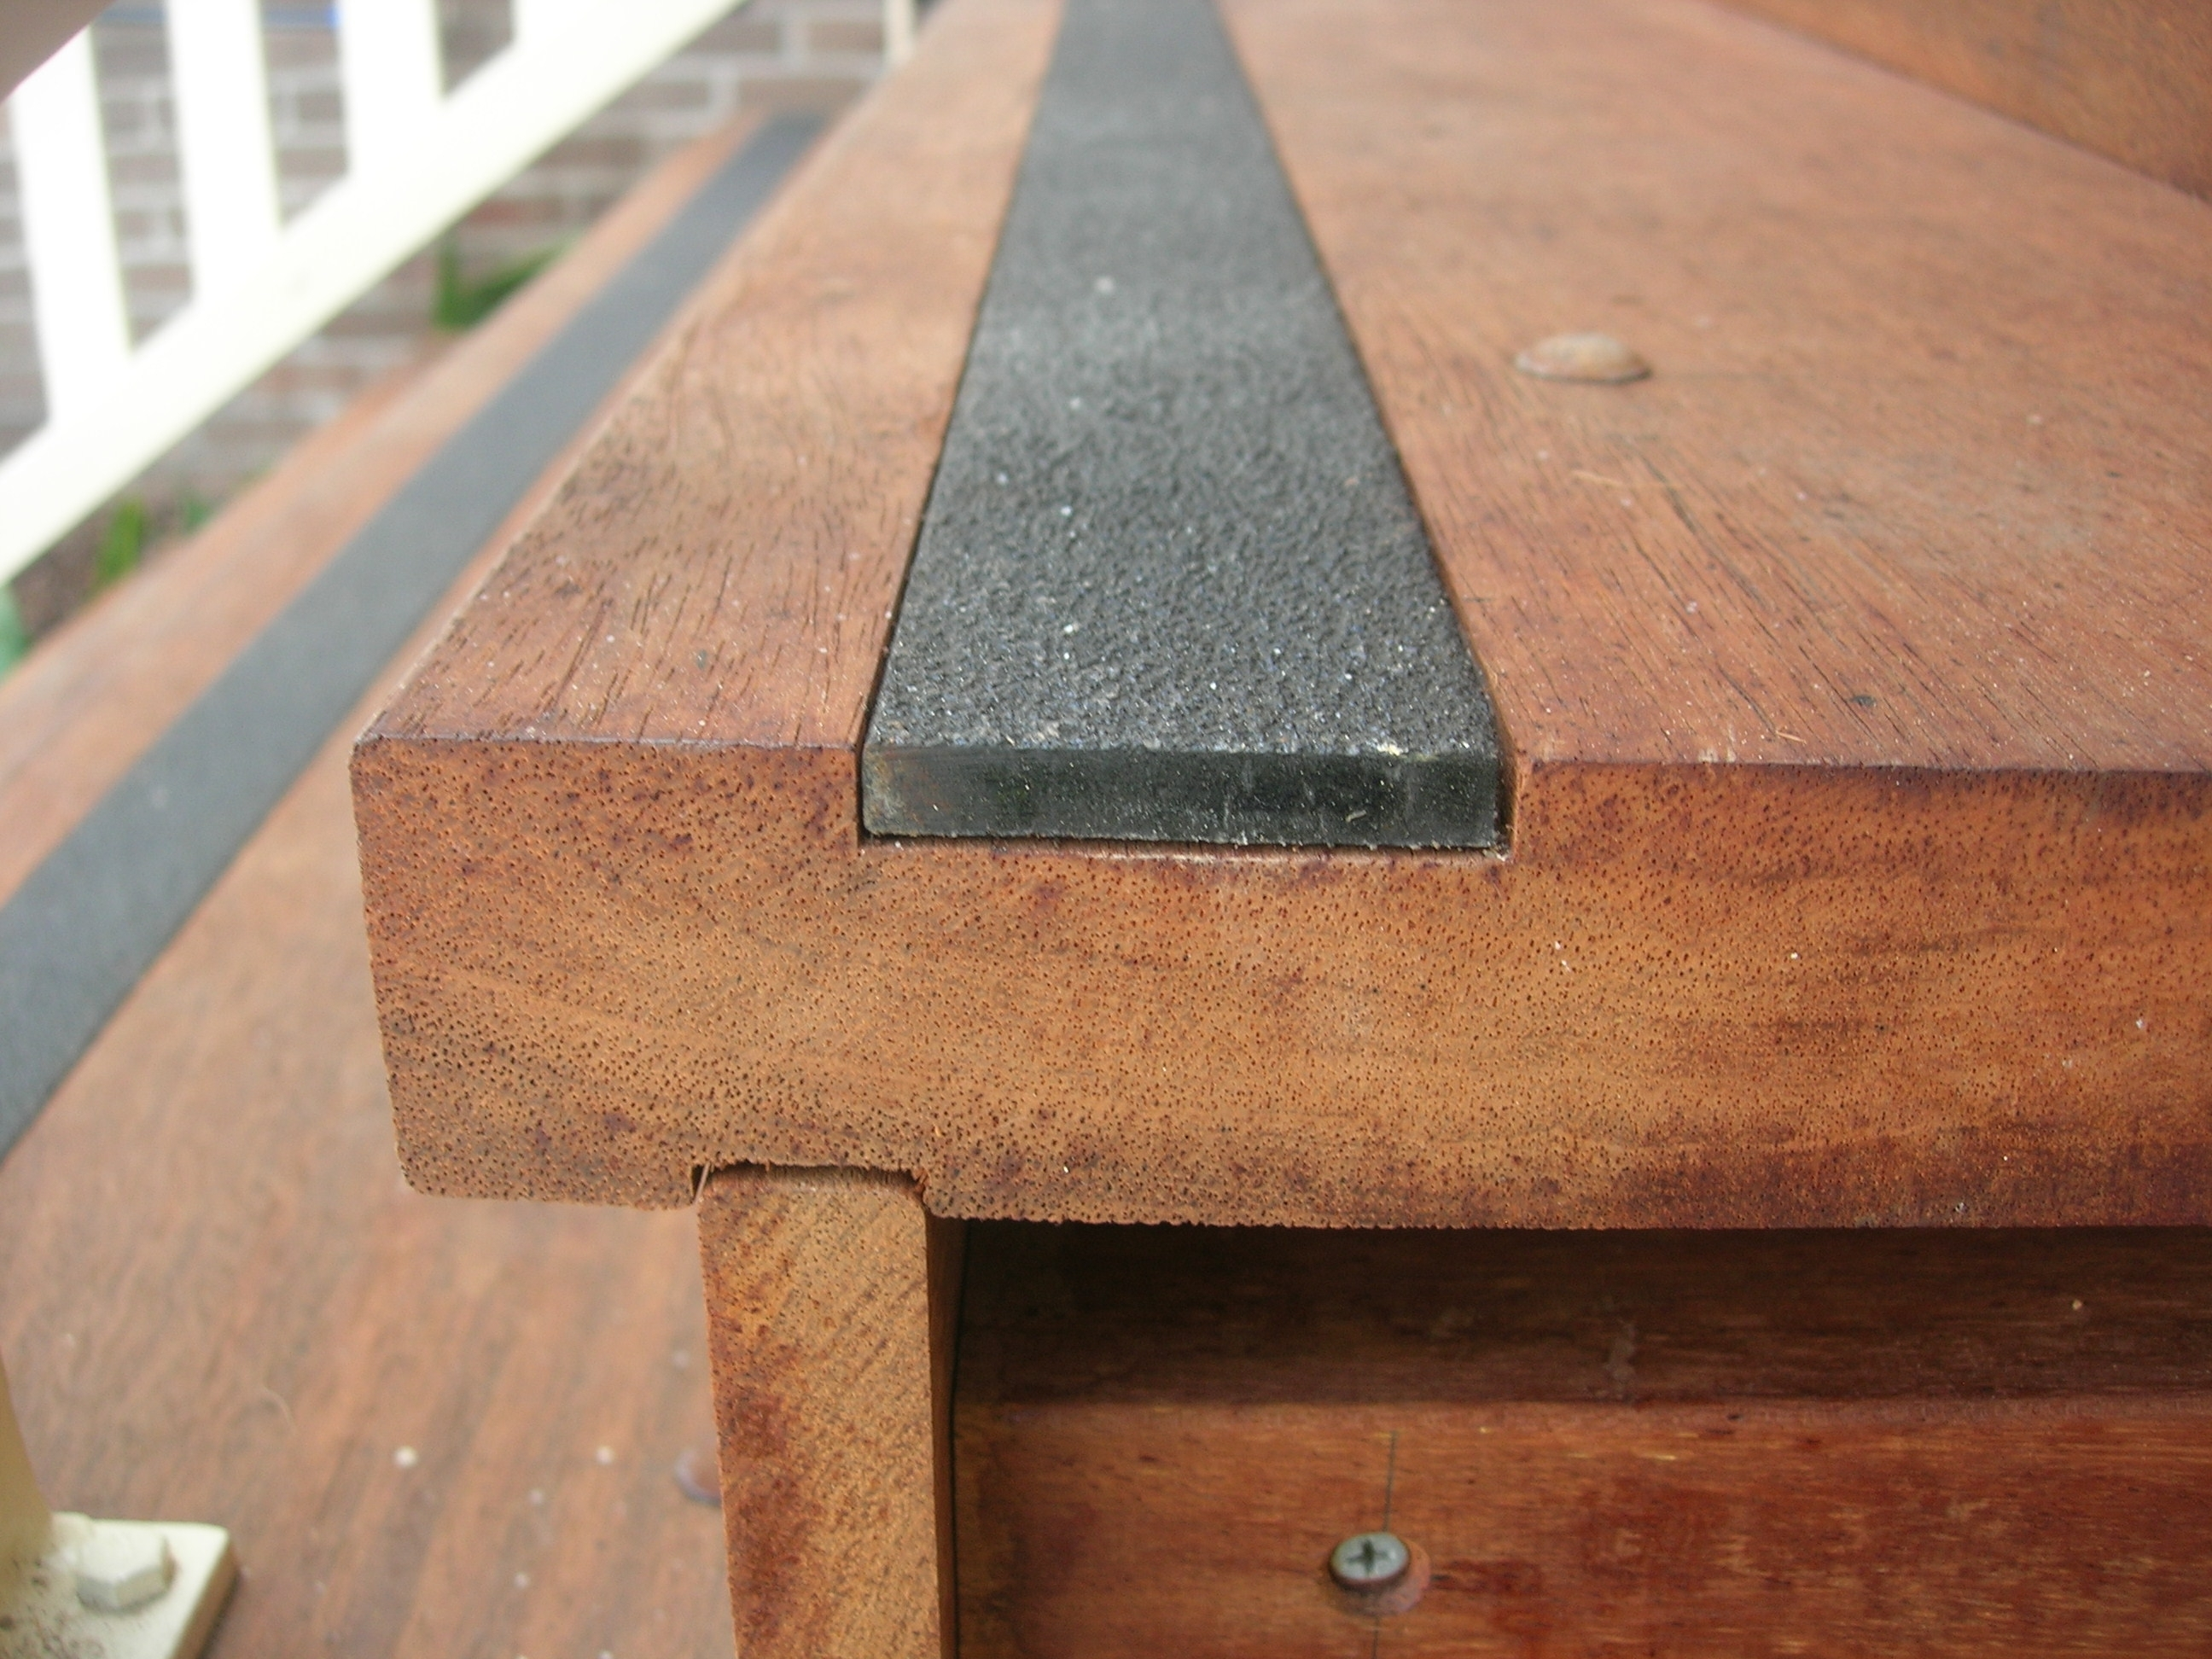 Image Result For Poured Concrete Stairs With Abrasive Tread In Skid Resistant Stair Treads (View 2 of 15)